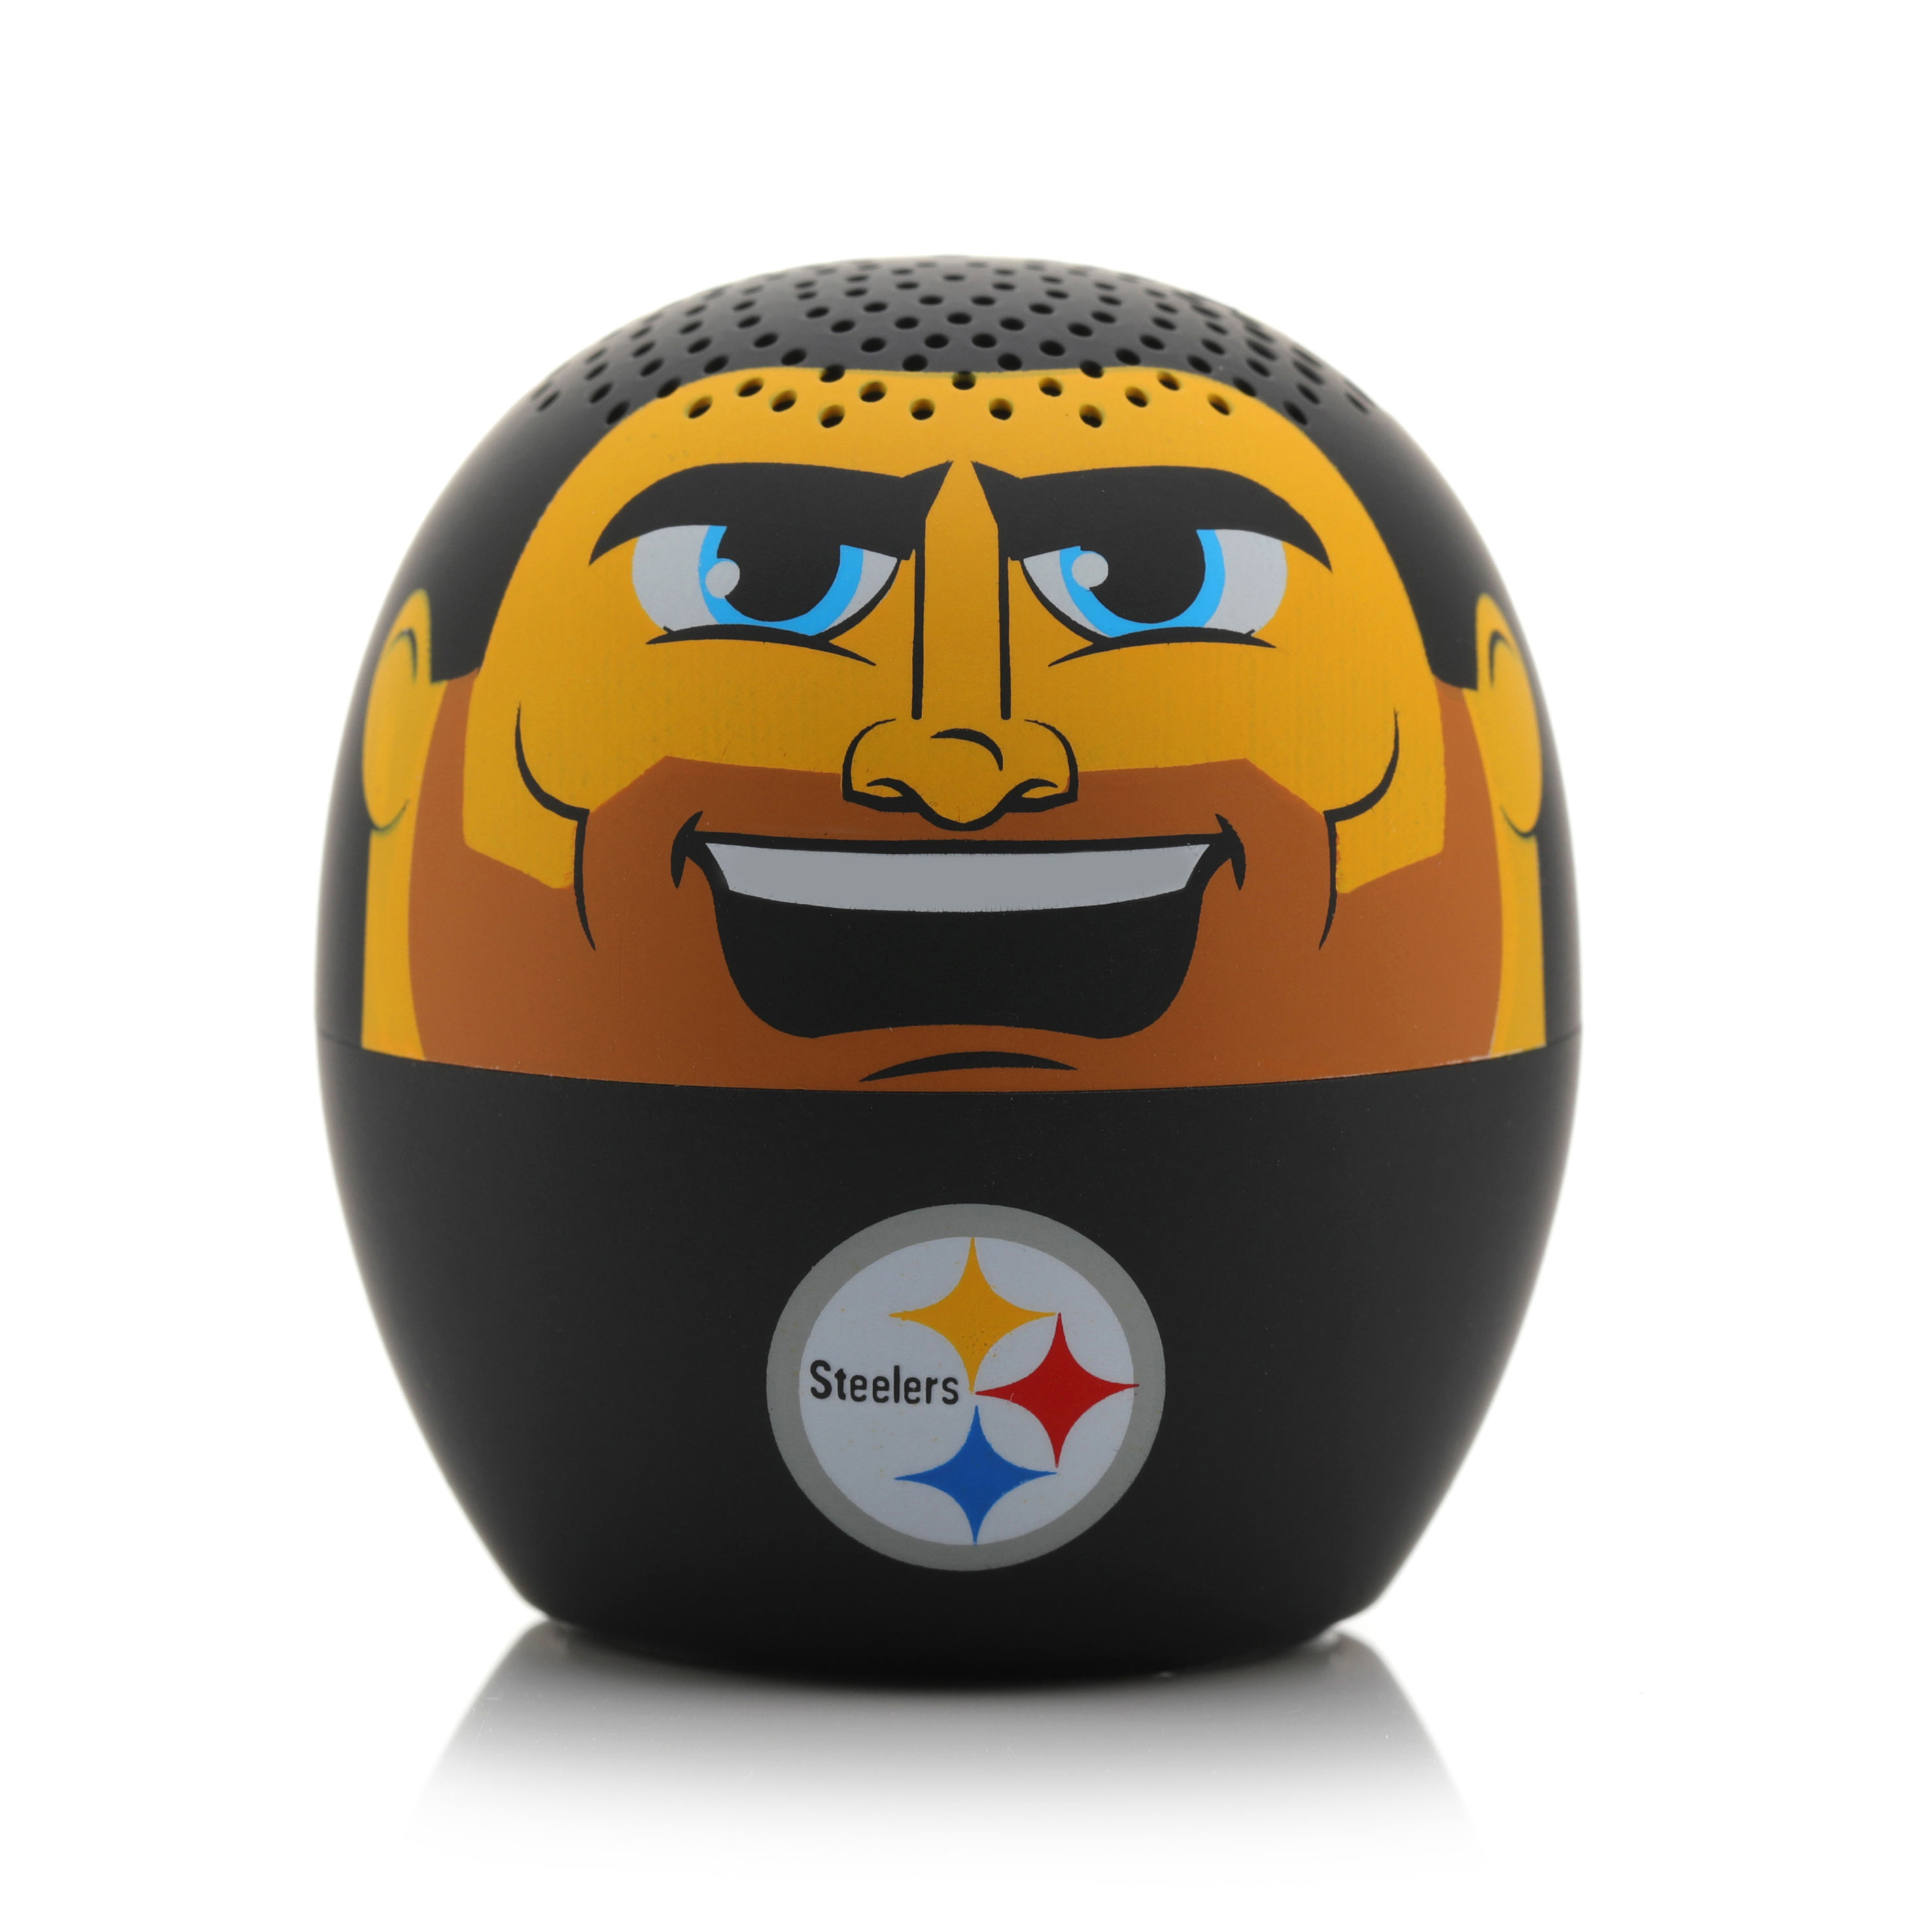 Bitty Boomers NFL Pittsburgh Steelers Bluetooth Giocattolo Altoparlante Portatile Action <span class=keywords><strong>Figure</strong></span> Bambini agli Adulti Navi da STATI UNITI D'AMERICA